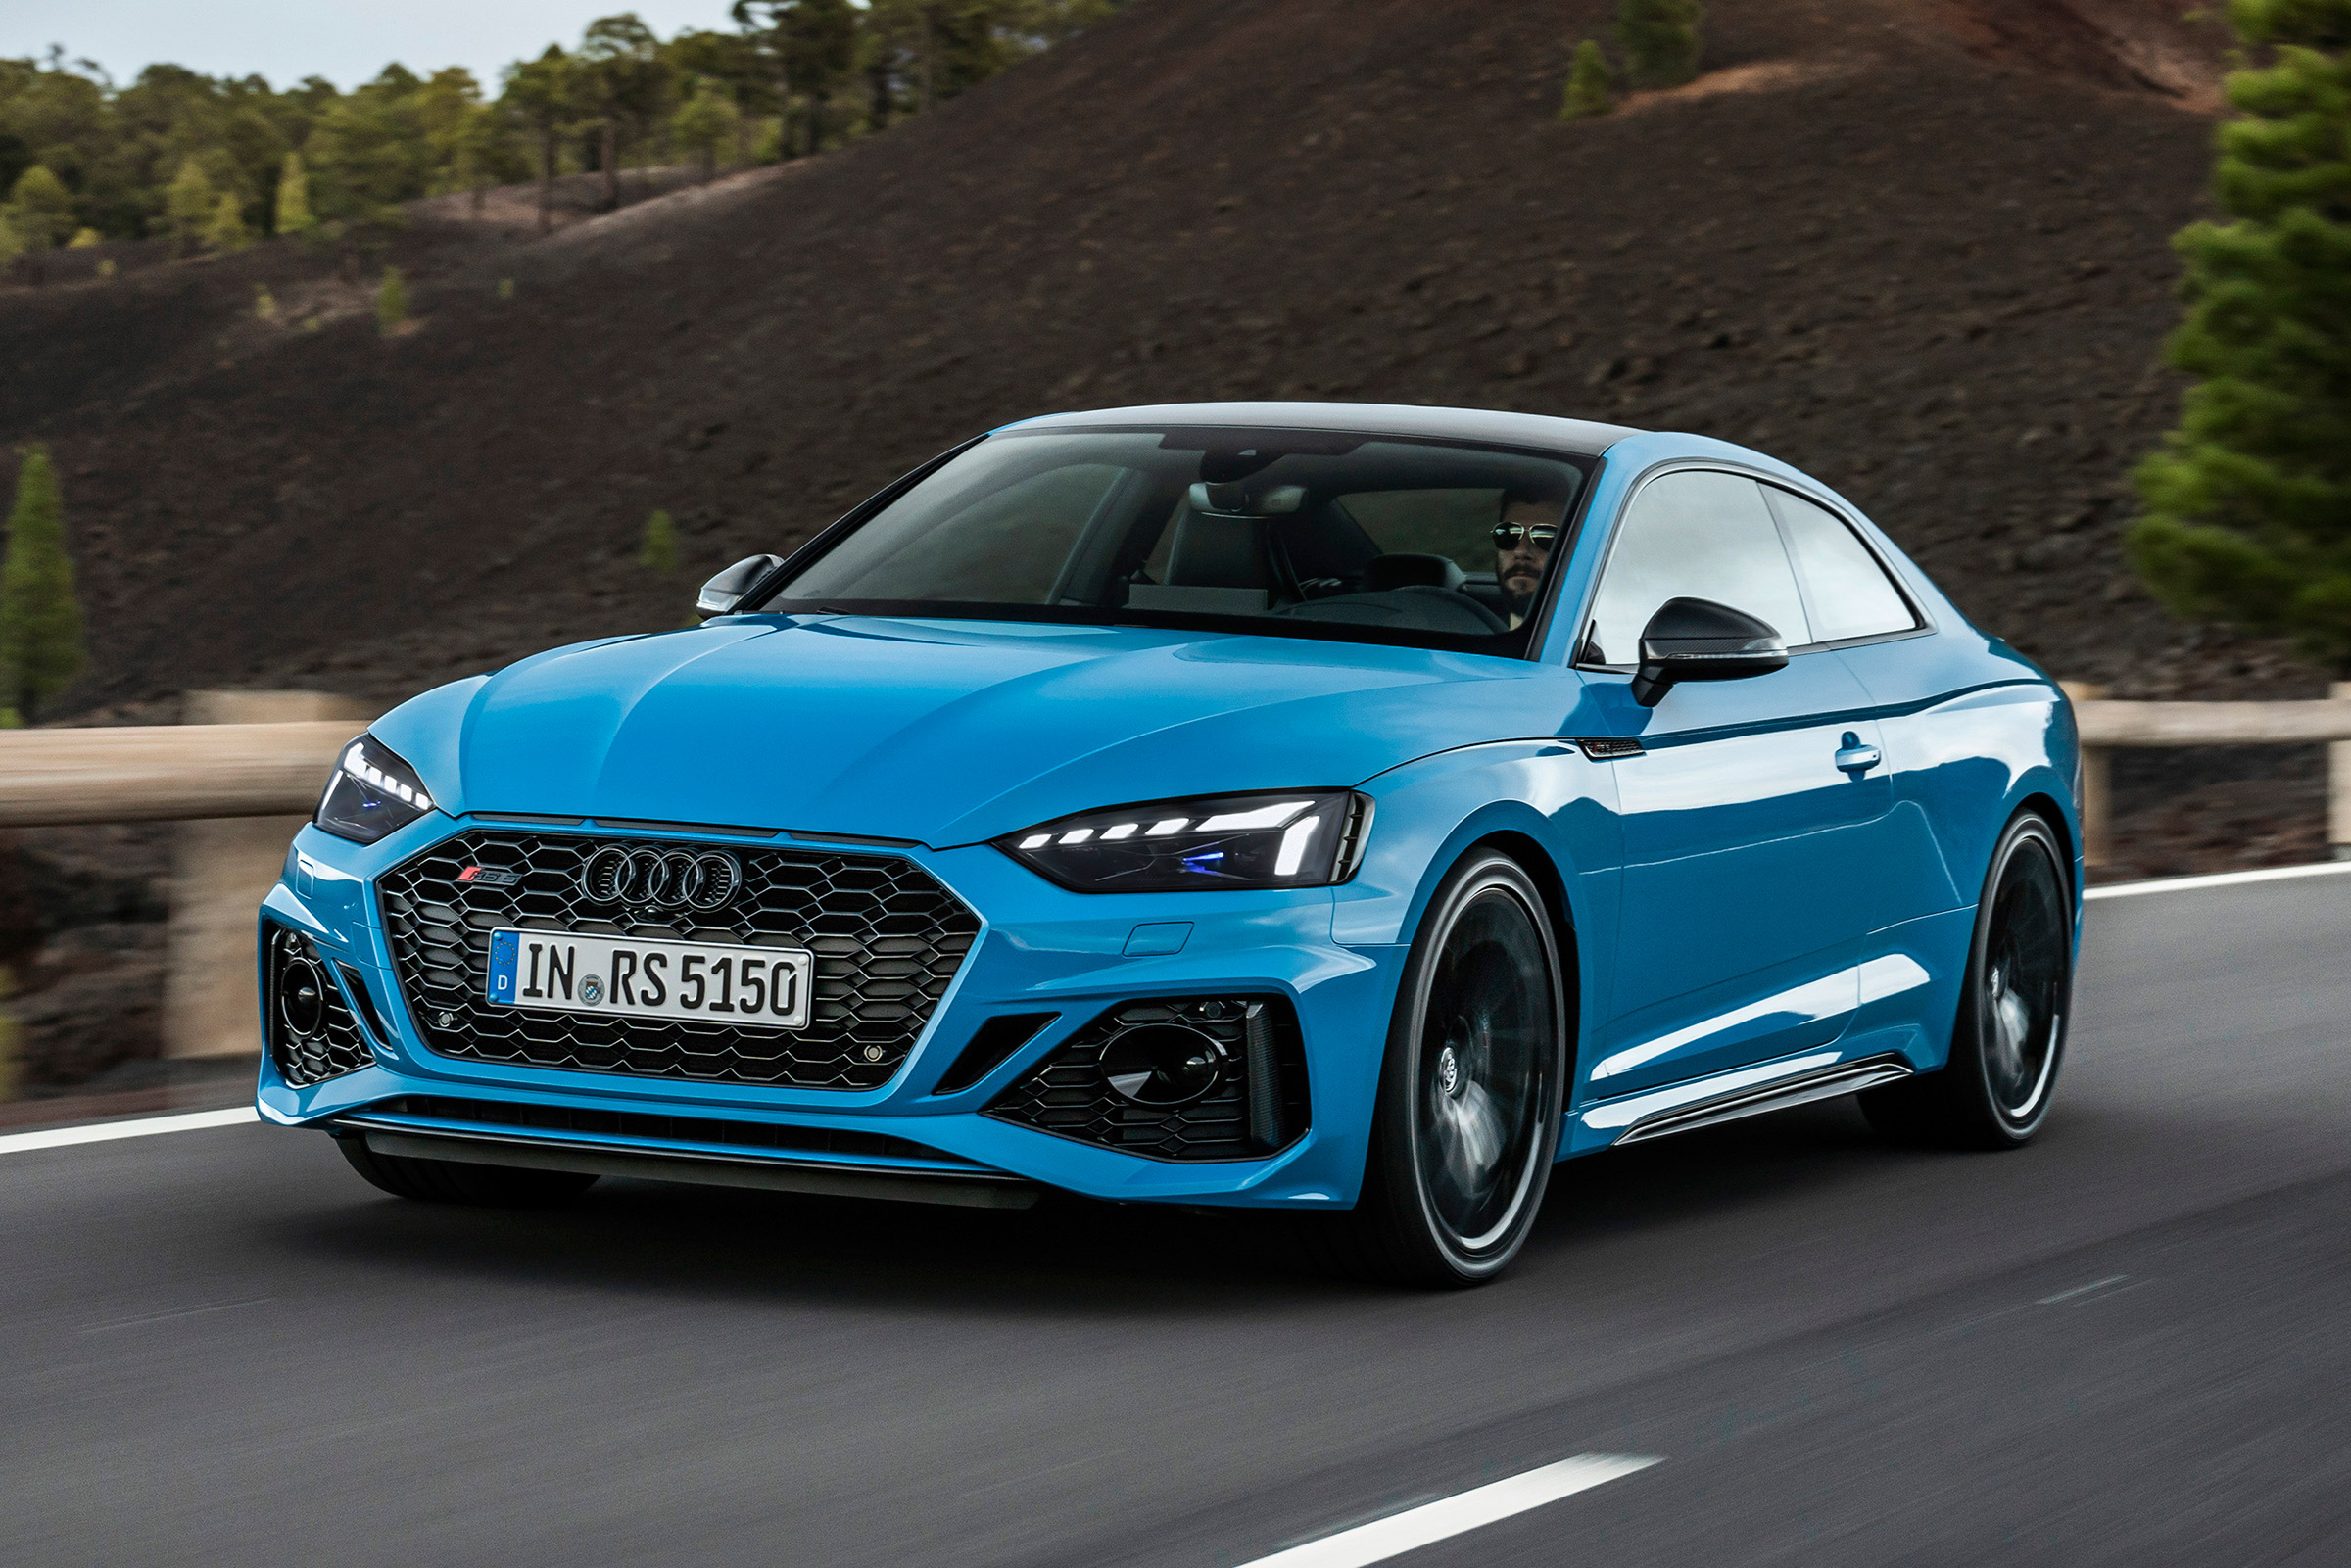 Audi Rs 5 Coupe And Sportback Models Get 2020 Tweaks Auto Express